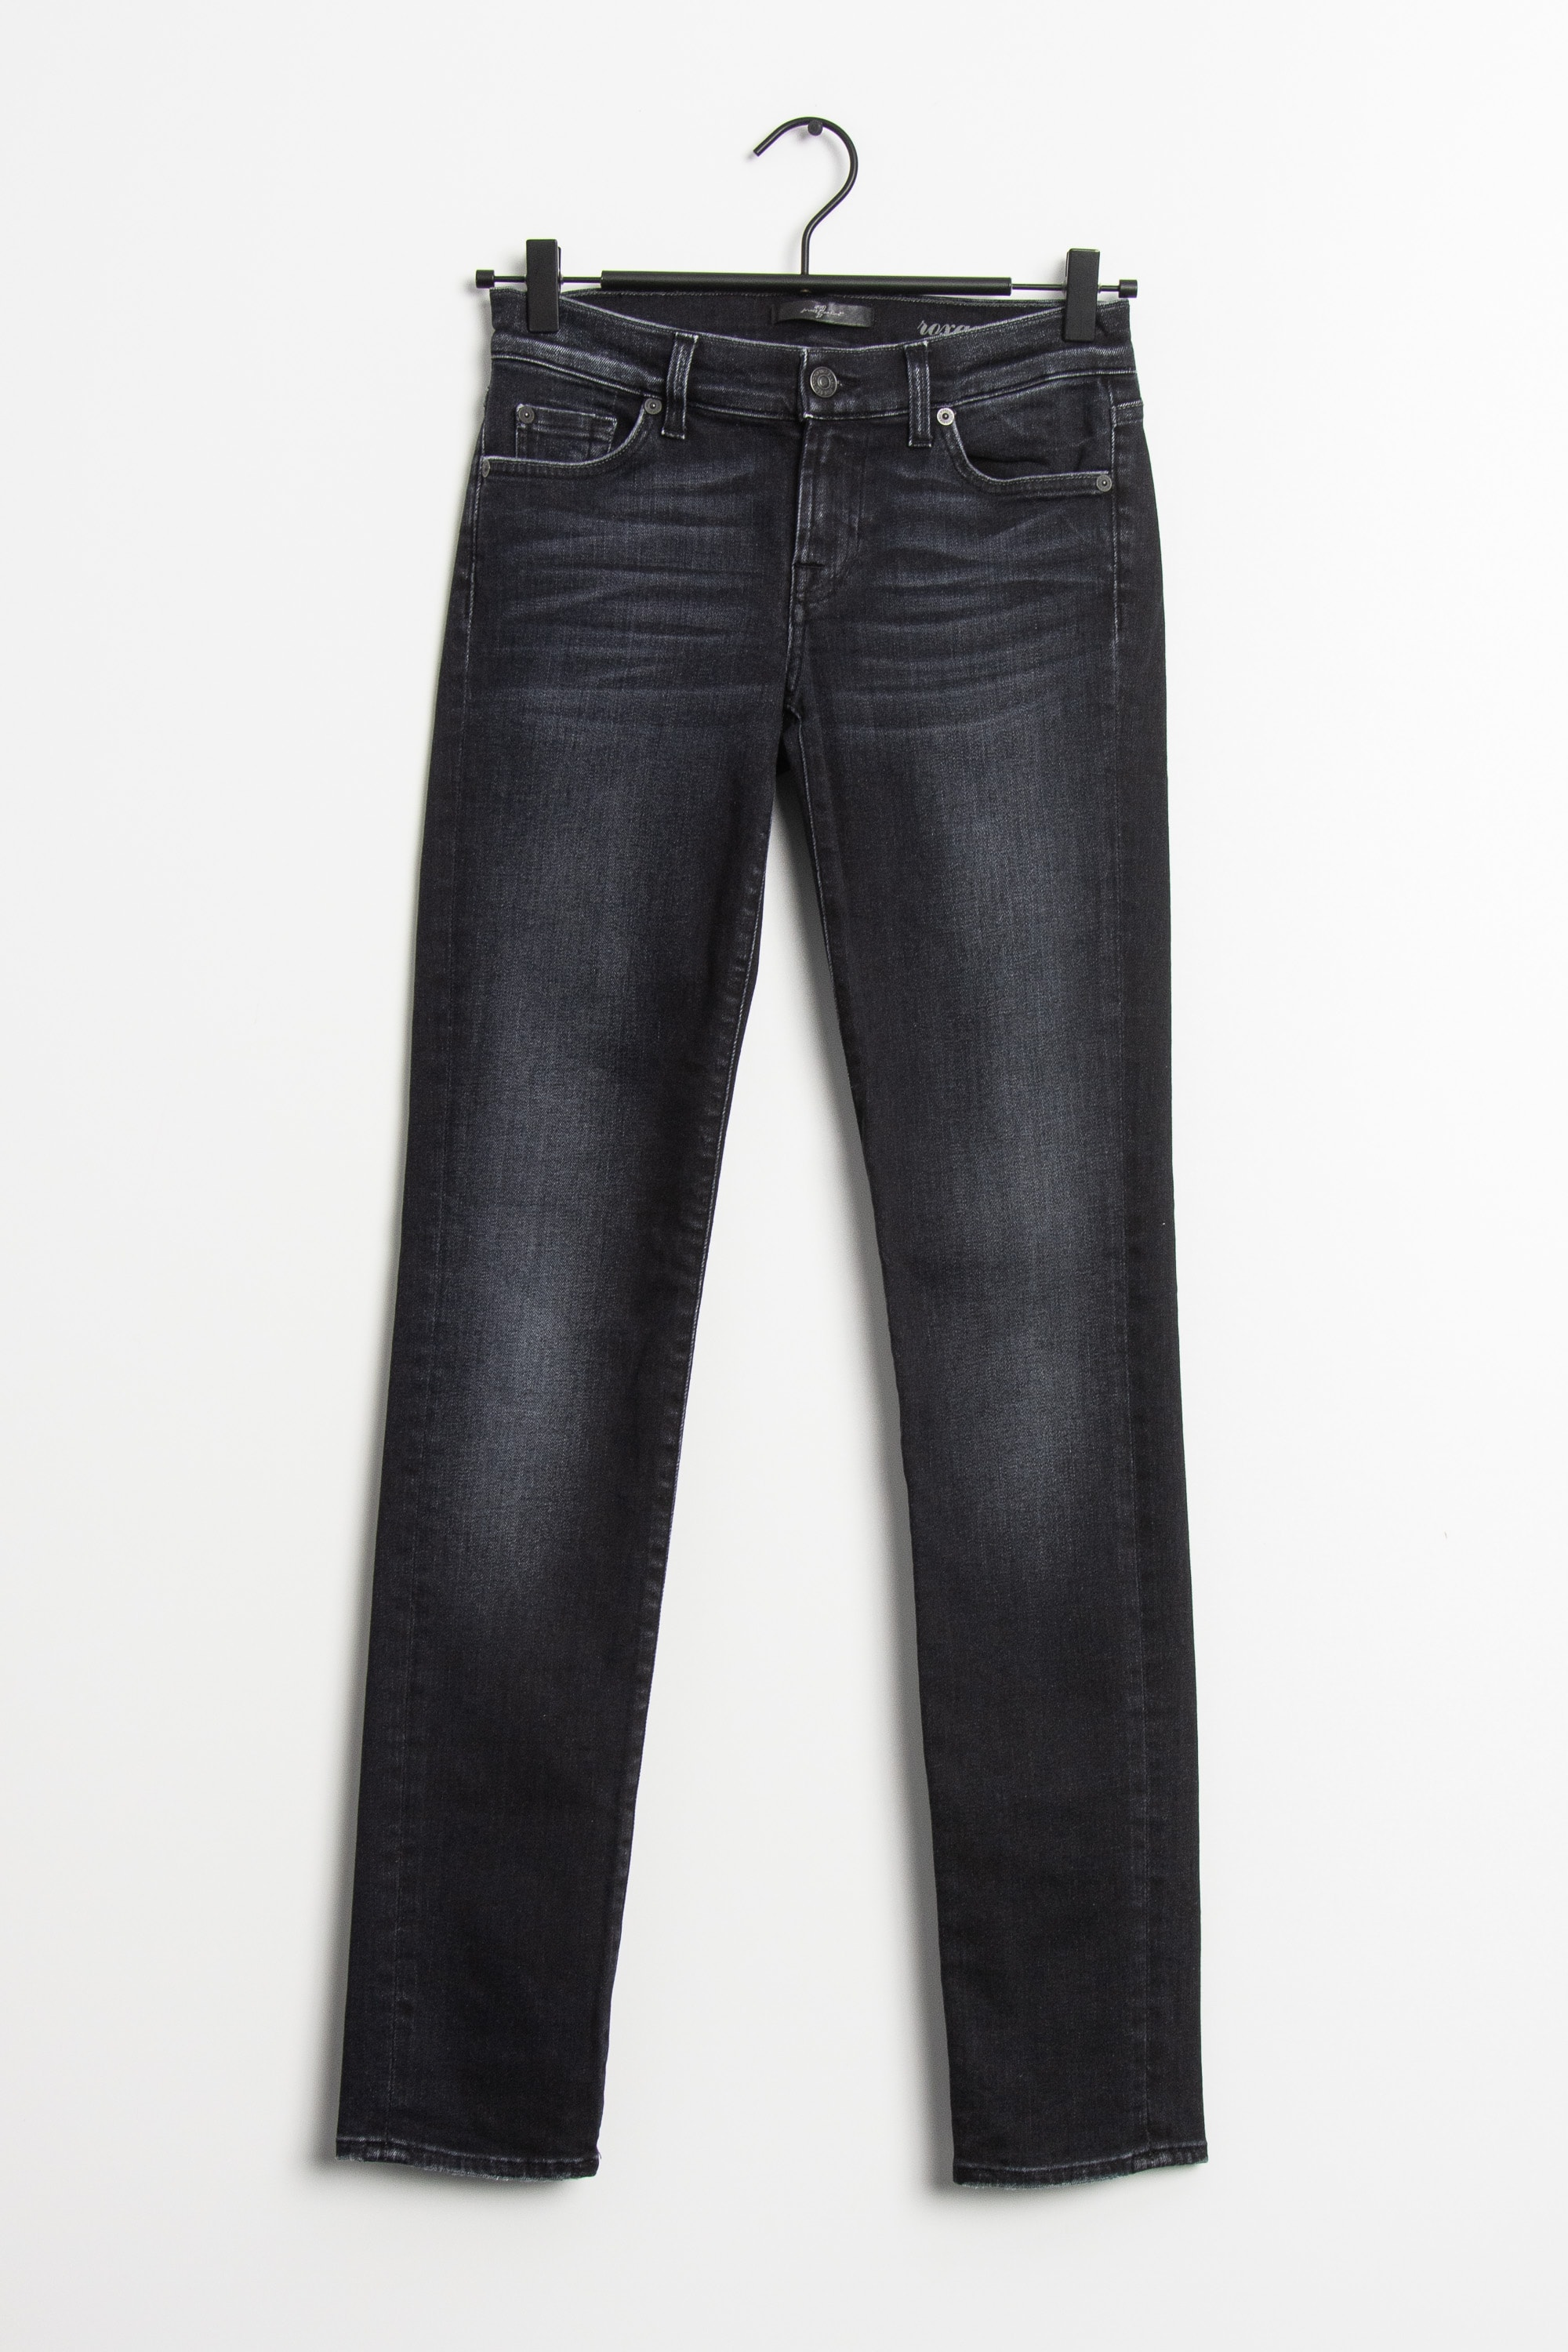 7 FOR ALL MANKIND Jeans Schwarz Gr.XS